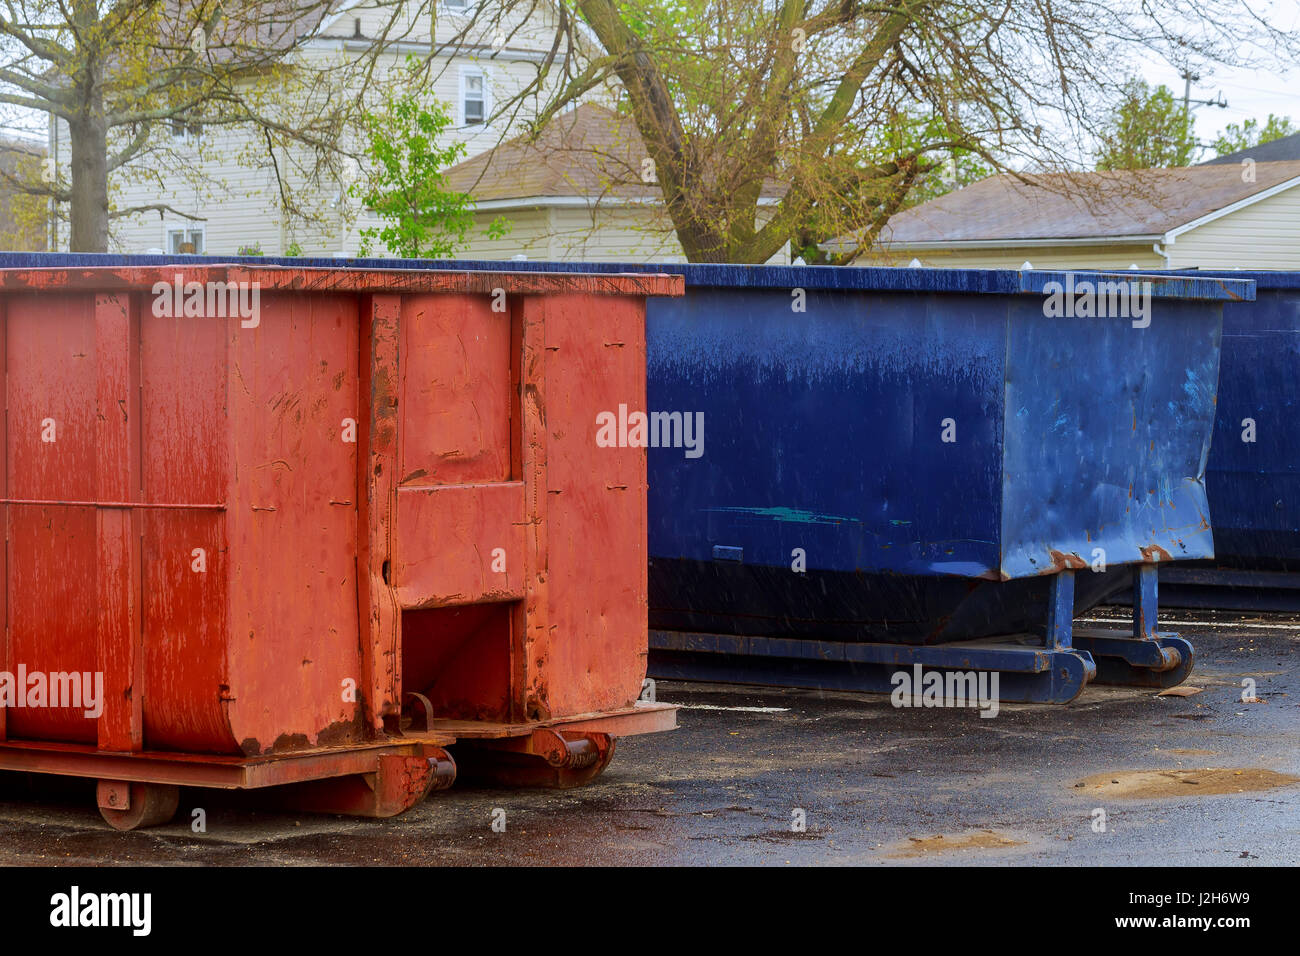 Garbage truck dumpster stock photos garbage truck for Construction container